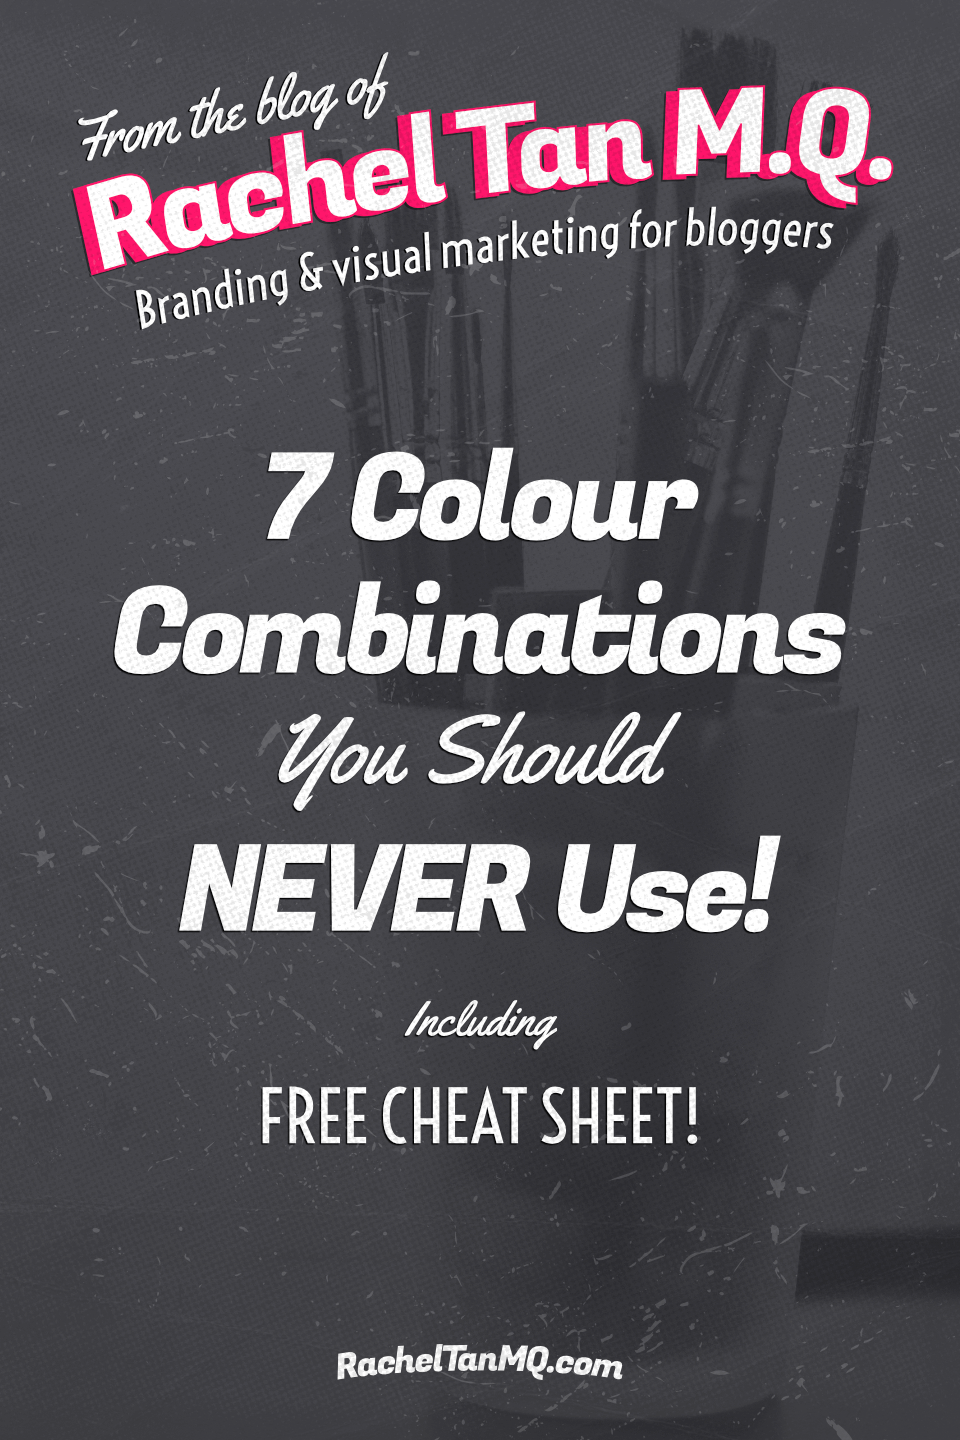 The colours you choose play a big part in making or breaking your visual brand. Make the right impression on your blog by avoiding these 7 colour combinations! • color palette | color schemes | graphic design tips | graphic design tutorials | blog brand design tips | blog brand design tutorials | blog design tips | blog design tutorials #visualbranding #colorschemes #colorpalettes #blogdesign #brandingtips #bloggingtips #graphicdesigntips